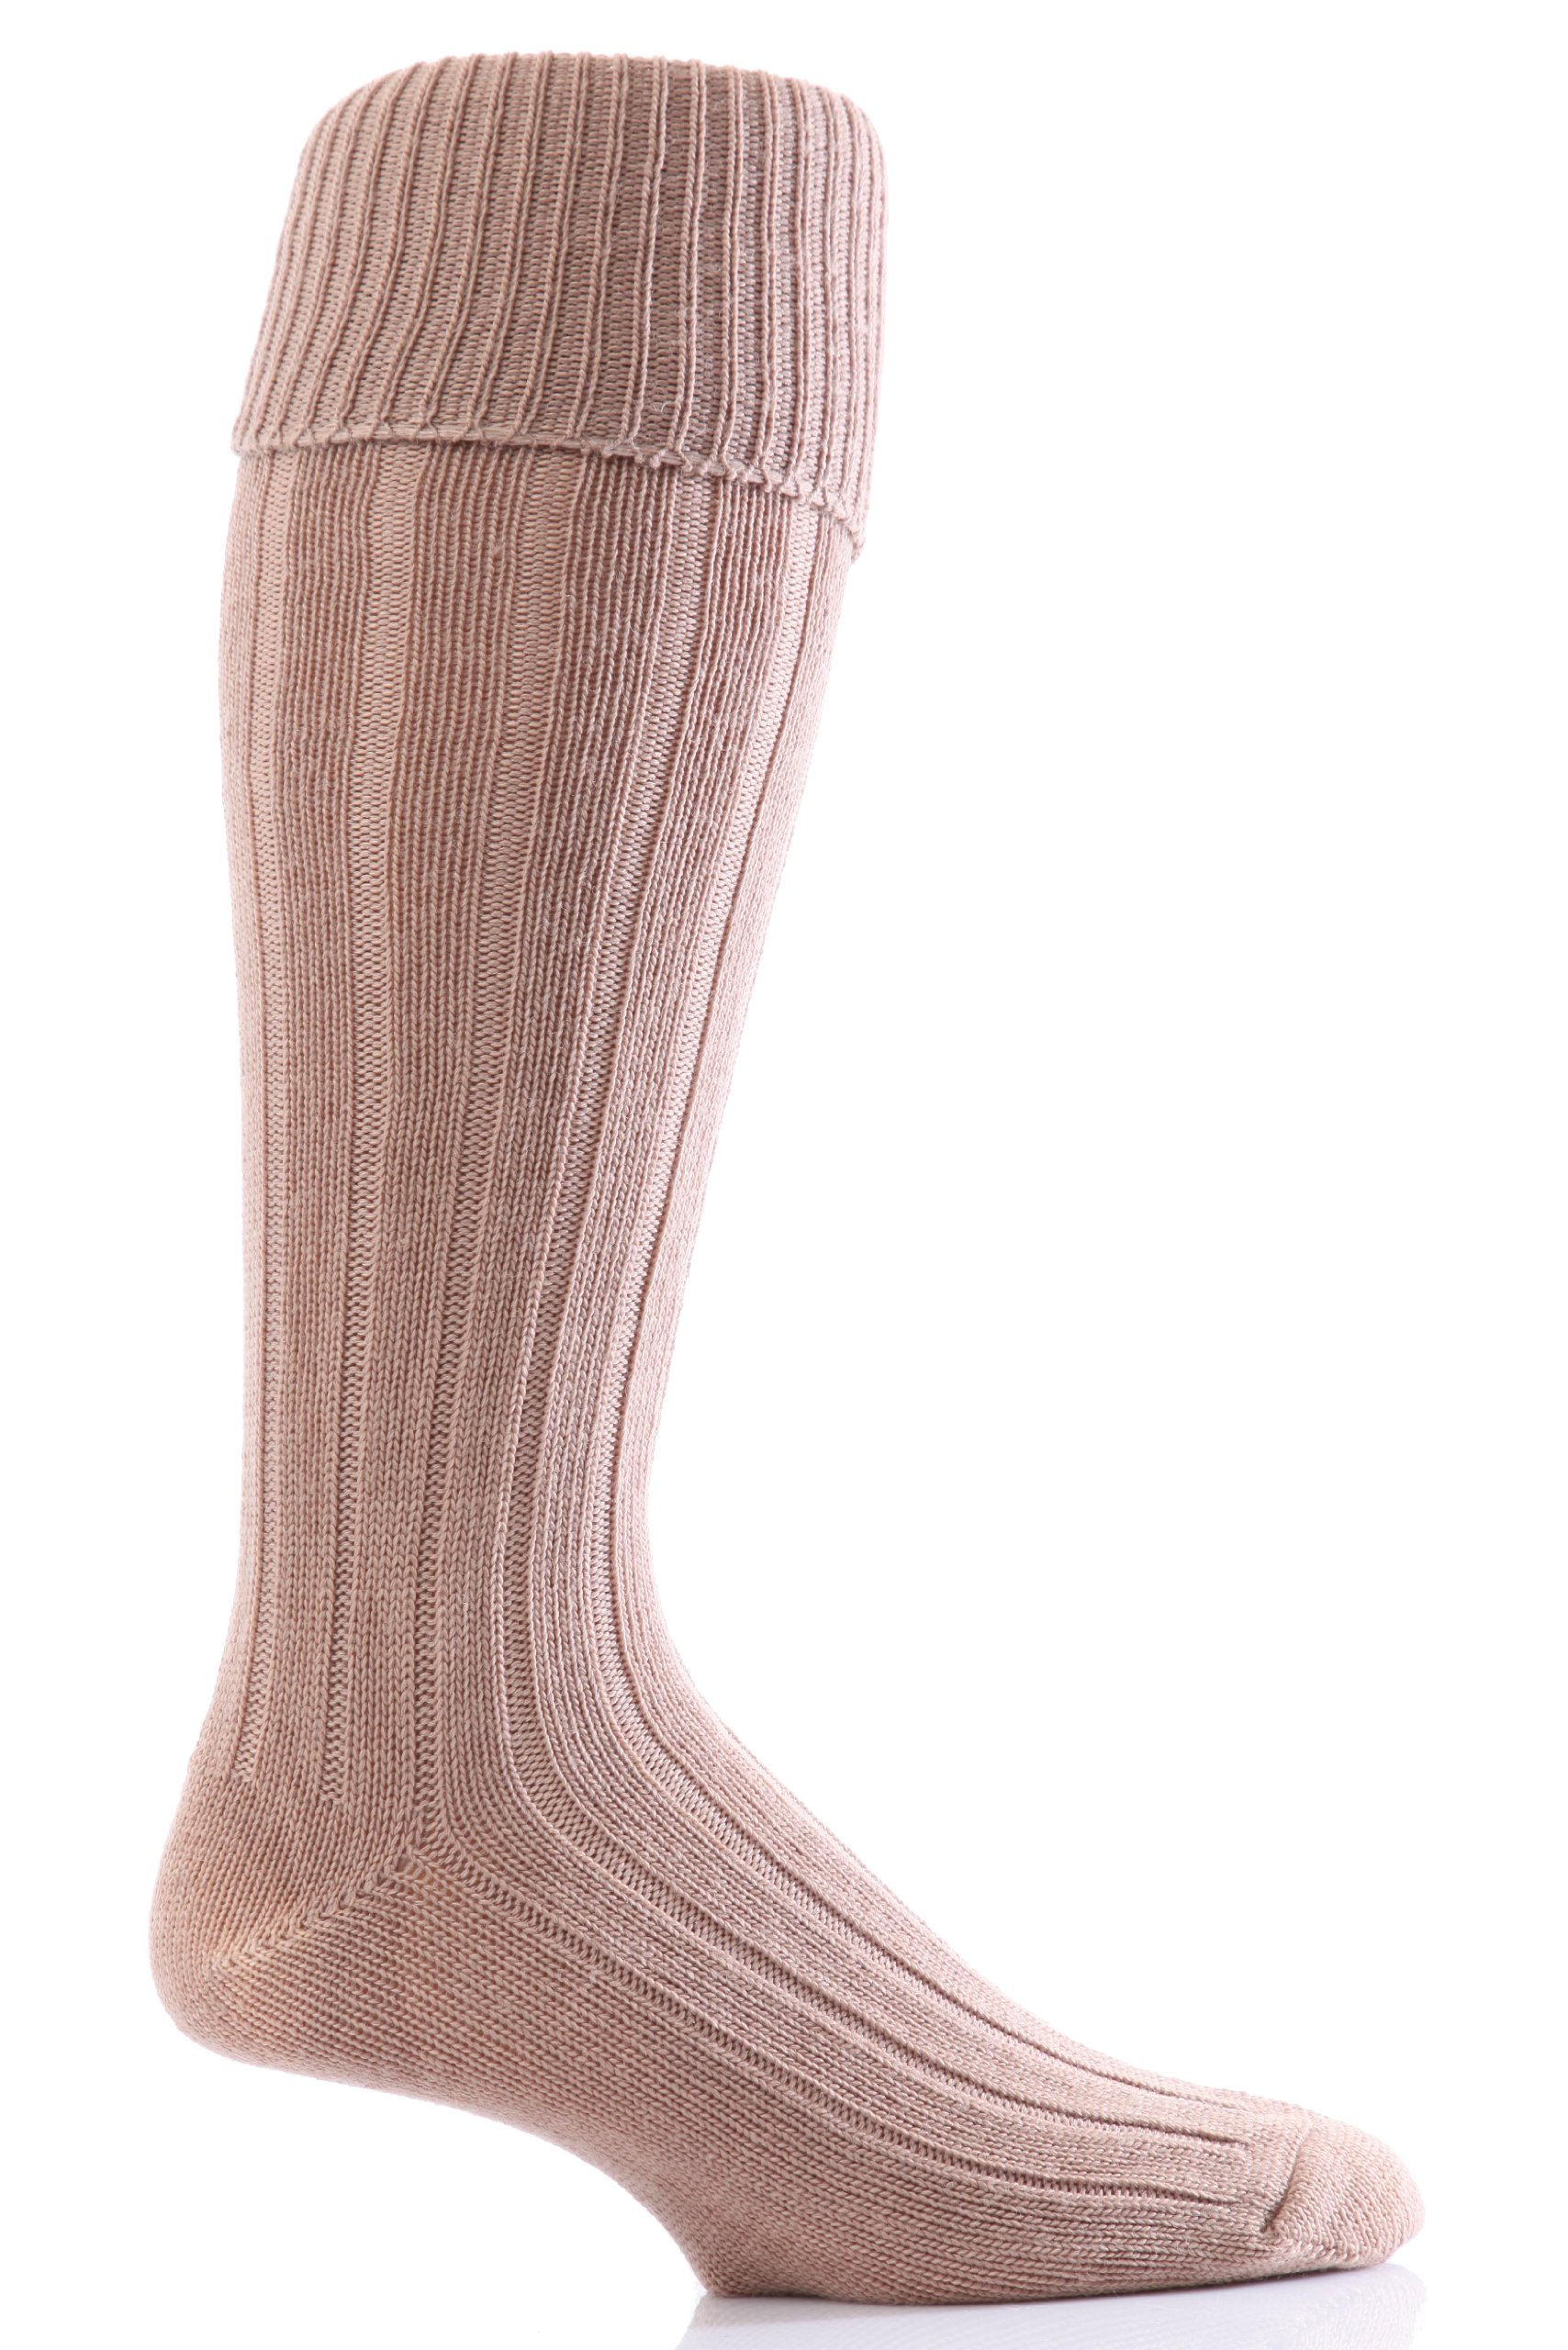 Glenmuir Men's 1 Pair Birkdale Golf Wool Knee High Socks with Turn Over Cuff 8-12 Fawn by Glenmuir